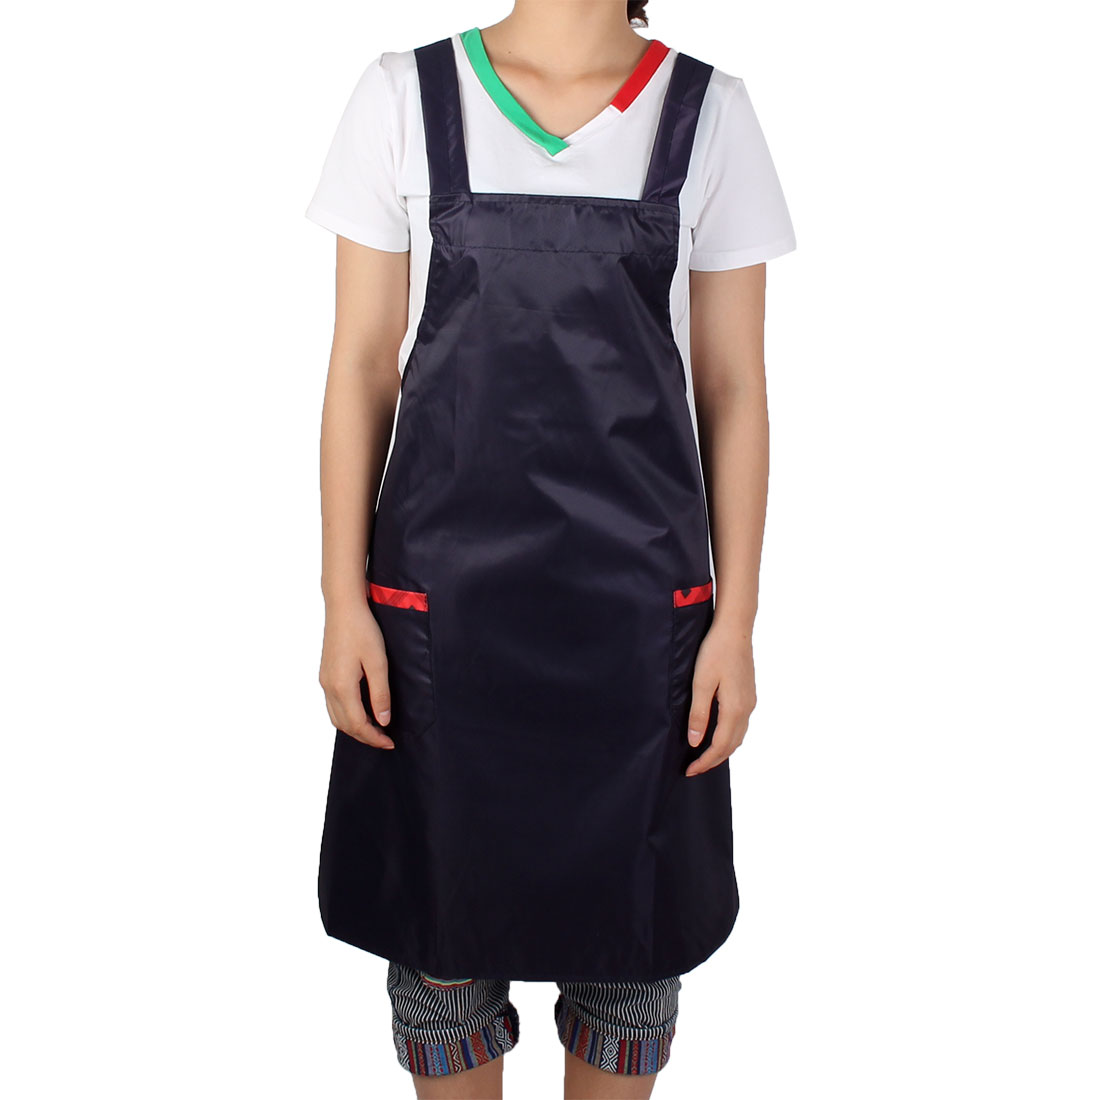 Unisex Household Hotel Kitchen Cafe Working Dress Patch Pocket Self Tie Bib Apron Black Red